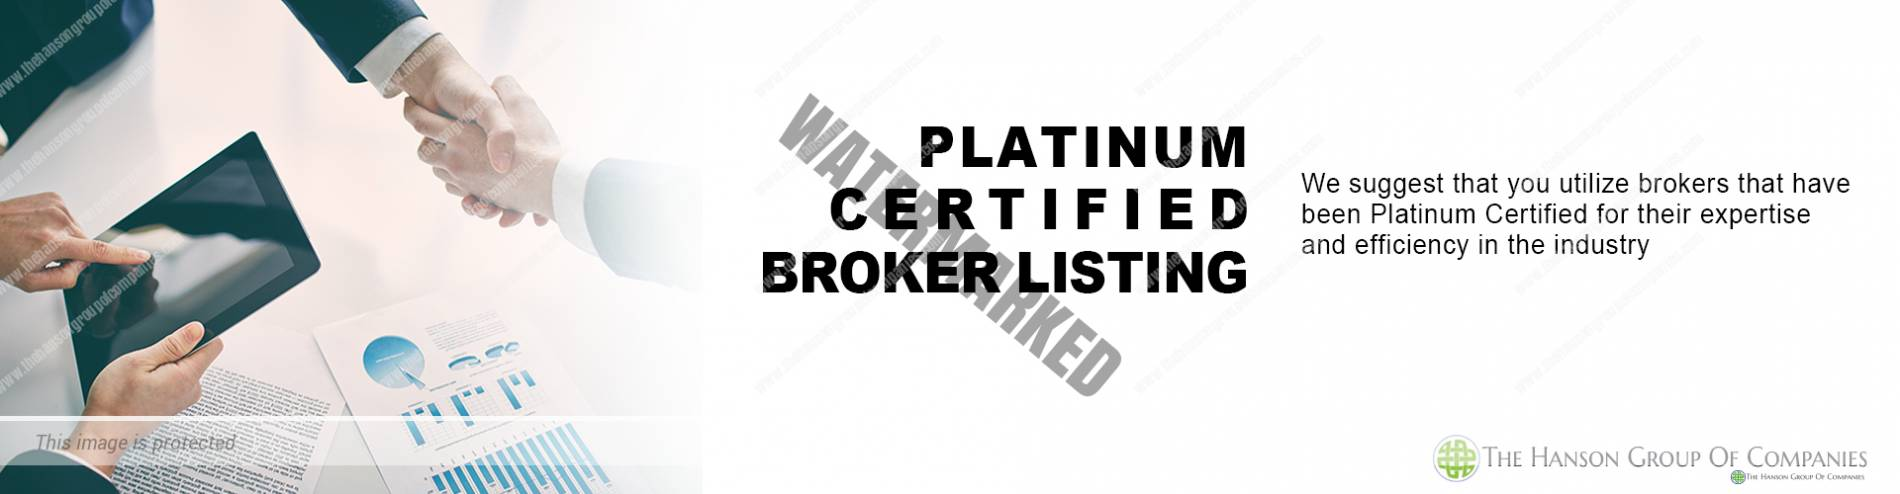 platinum-certified-broker-listing